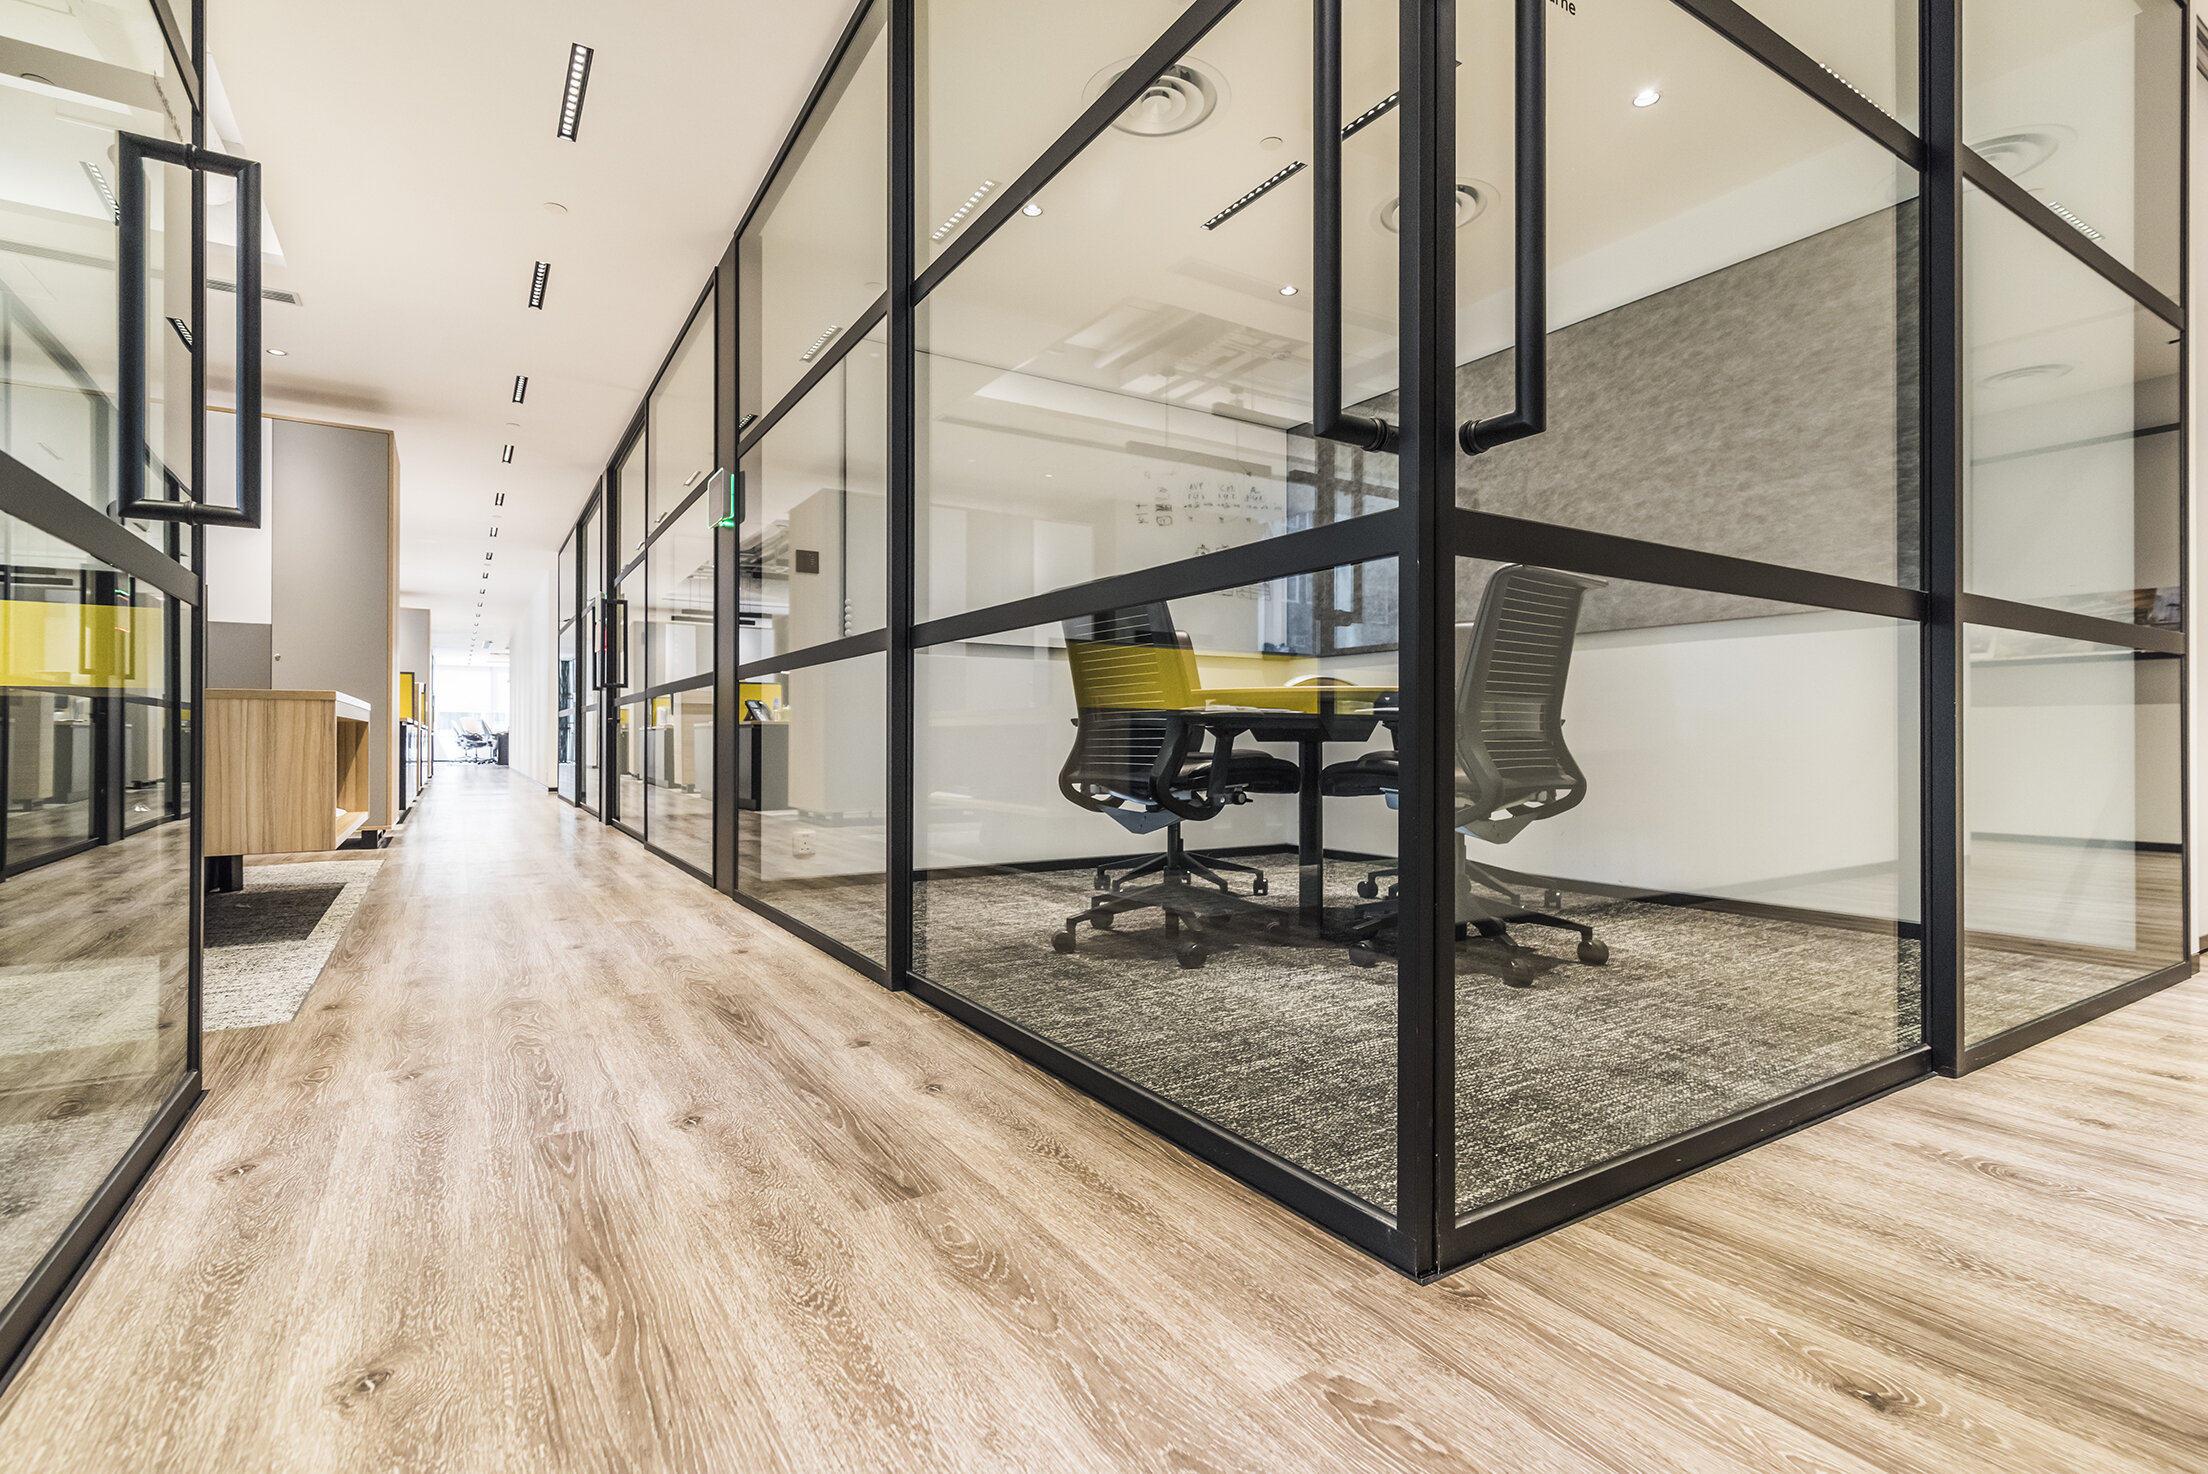 jeb-partitions-summit-integra-pivot-door-hongkong-office-16.jpg